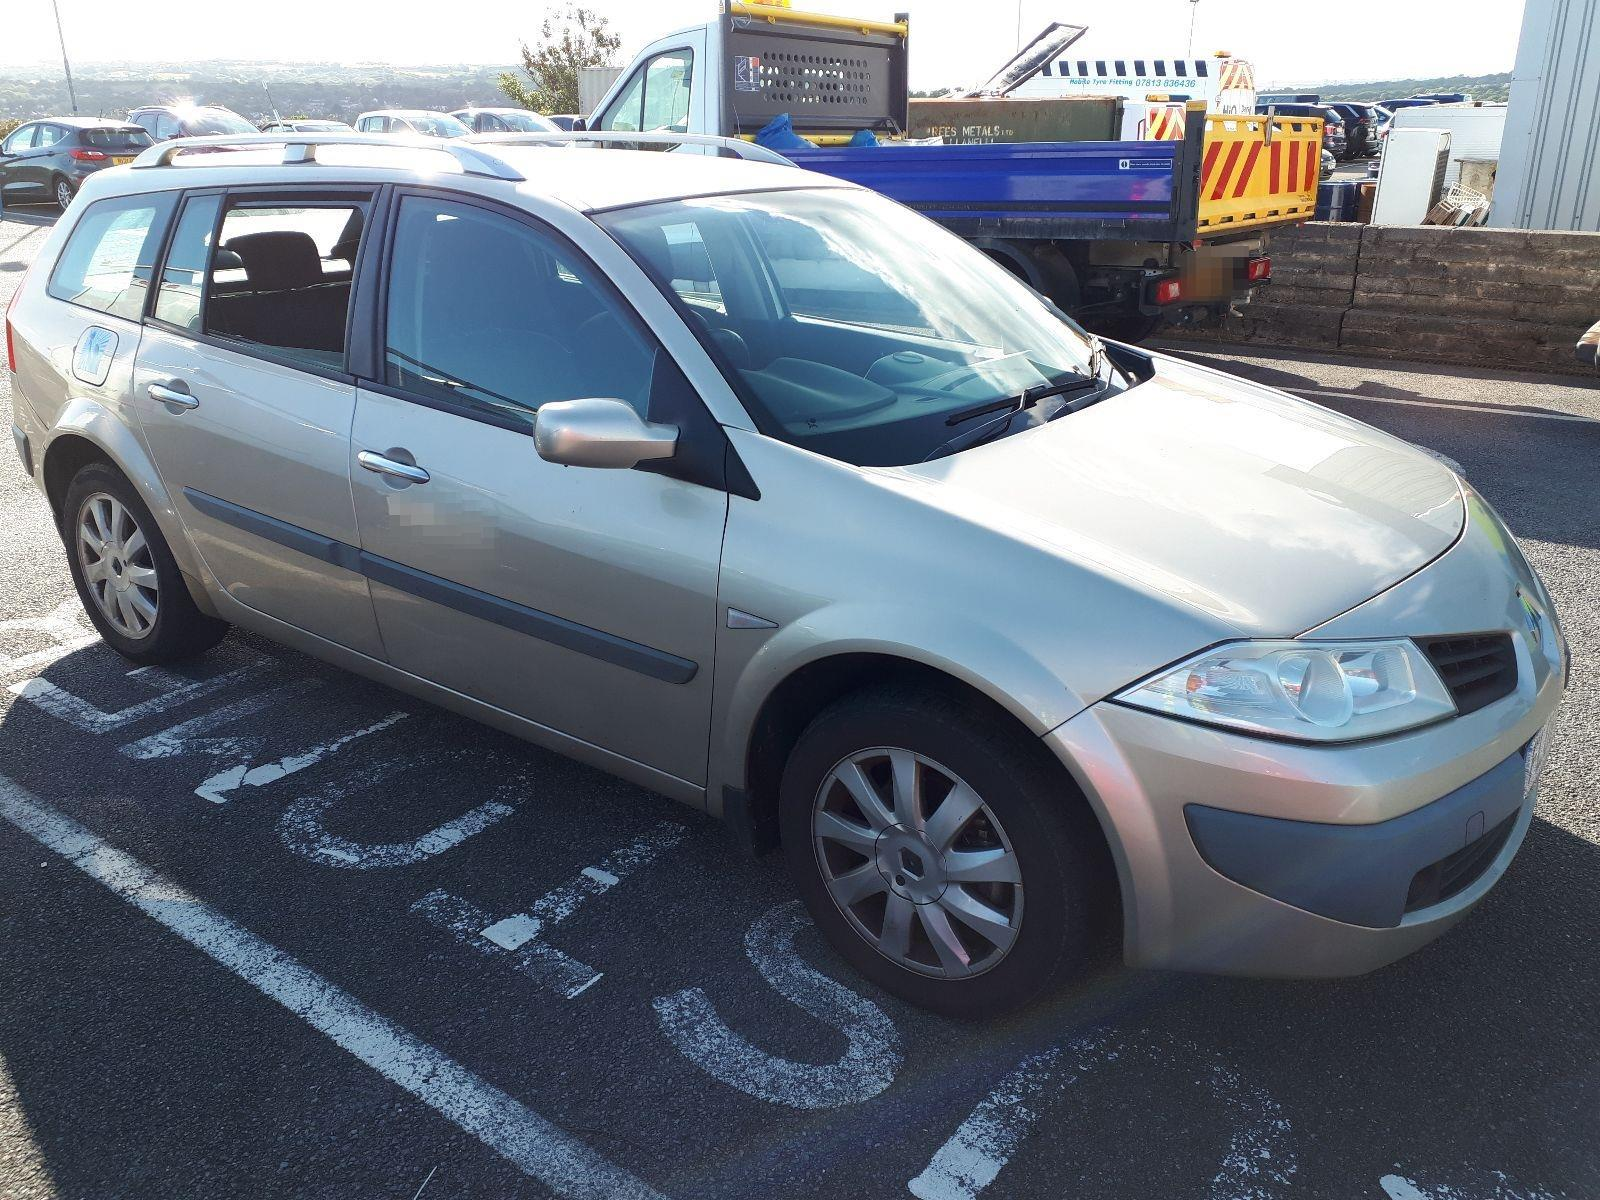 Renault Scenic Megane Parts List | Viewmotorjdi.org